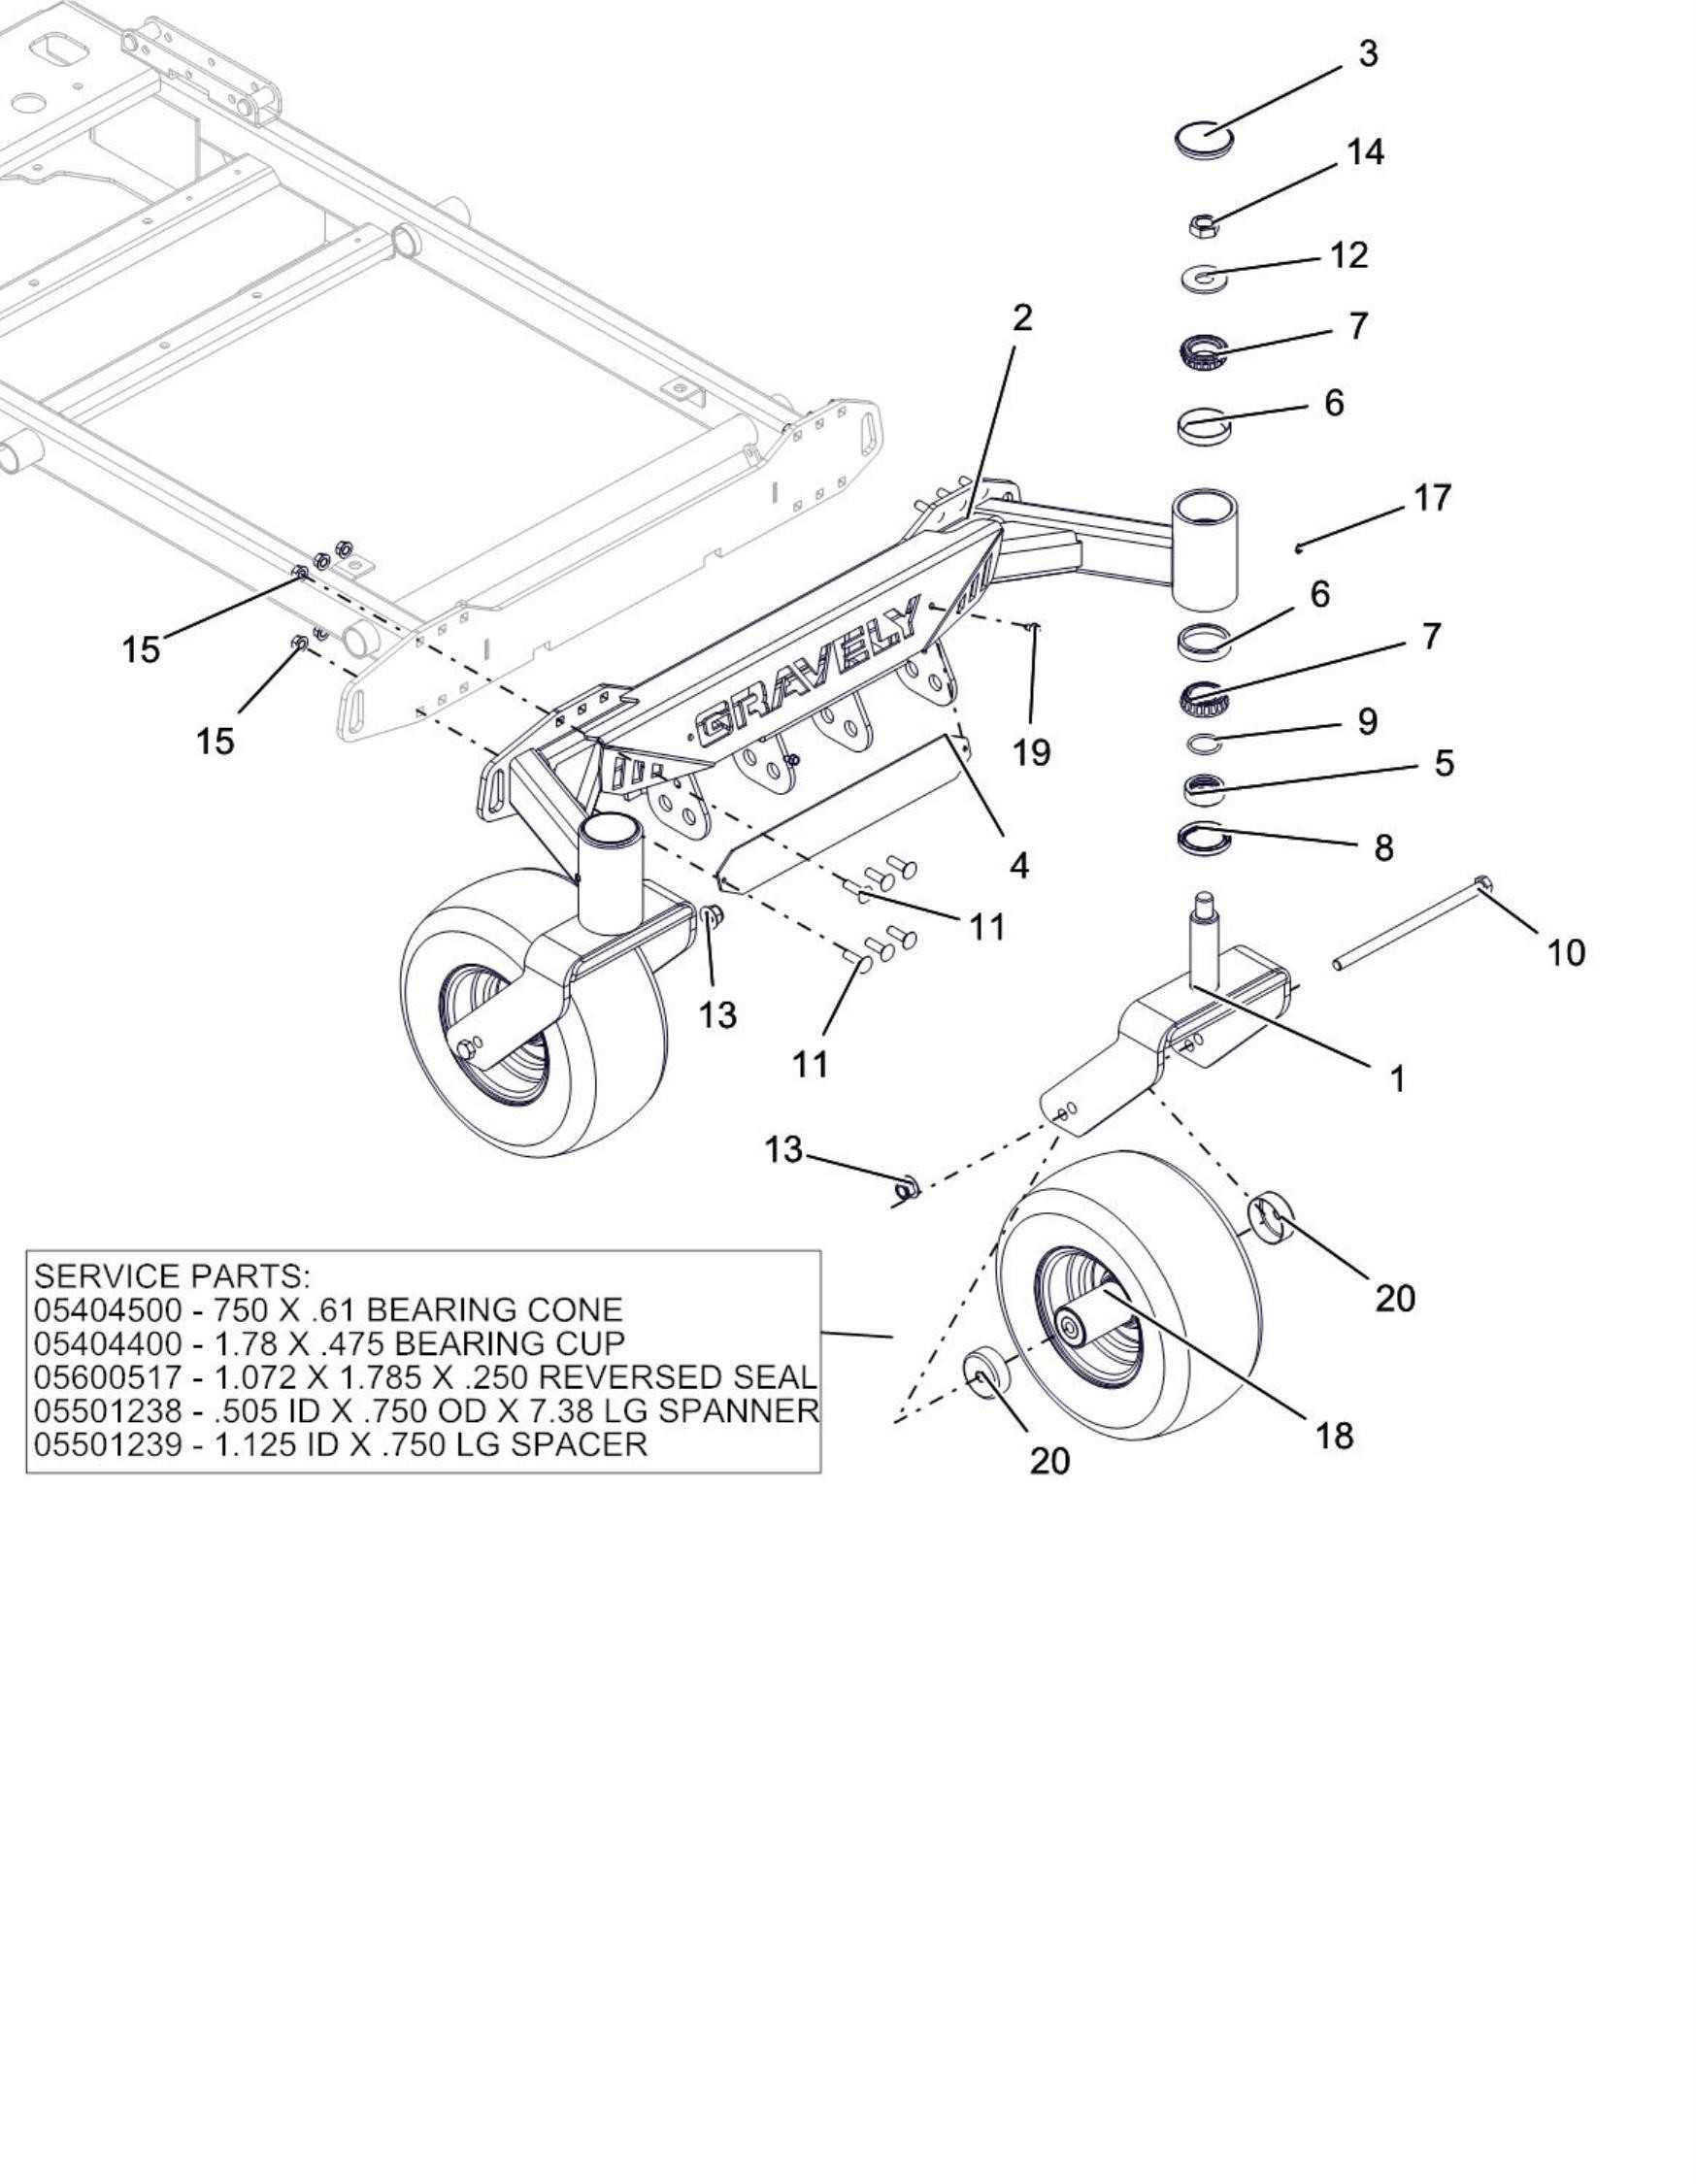 Diagram Of Car Wheel and Axle Front Axle and Tire 60 Inch